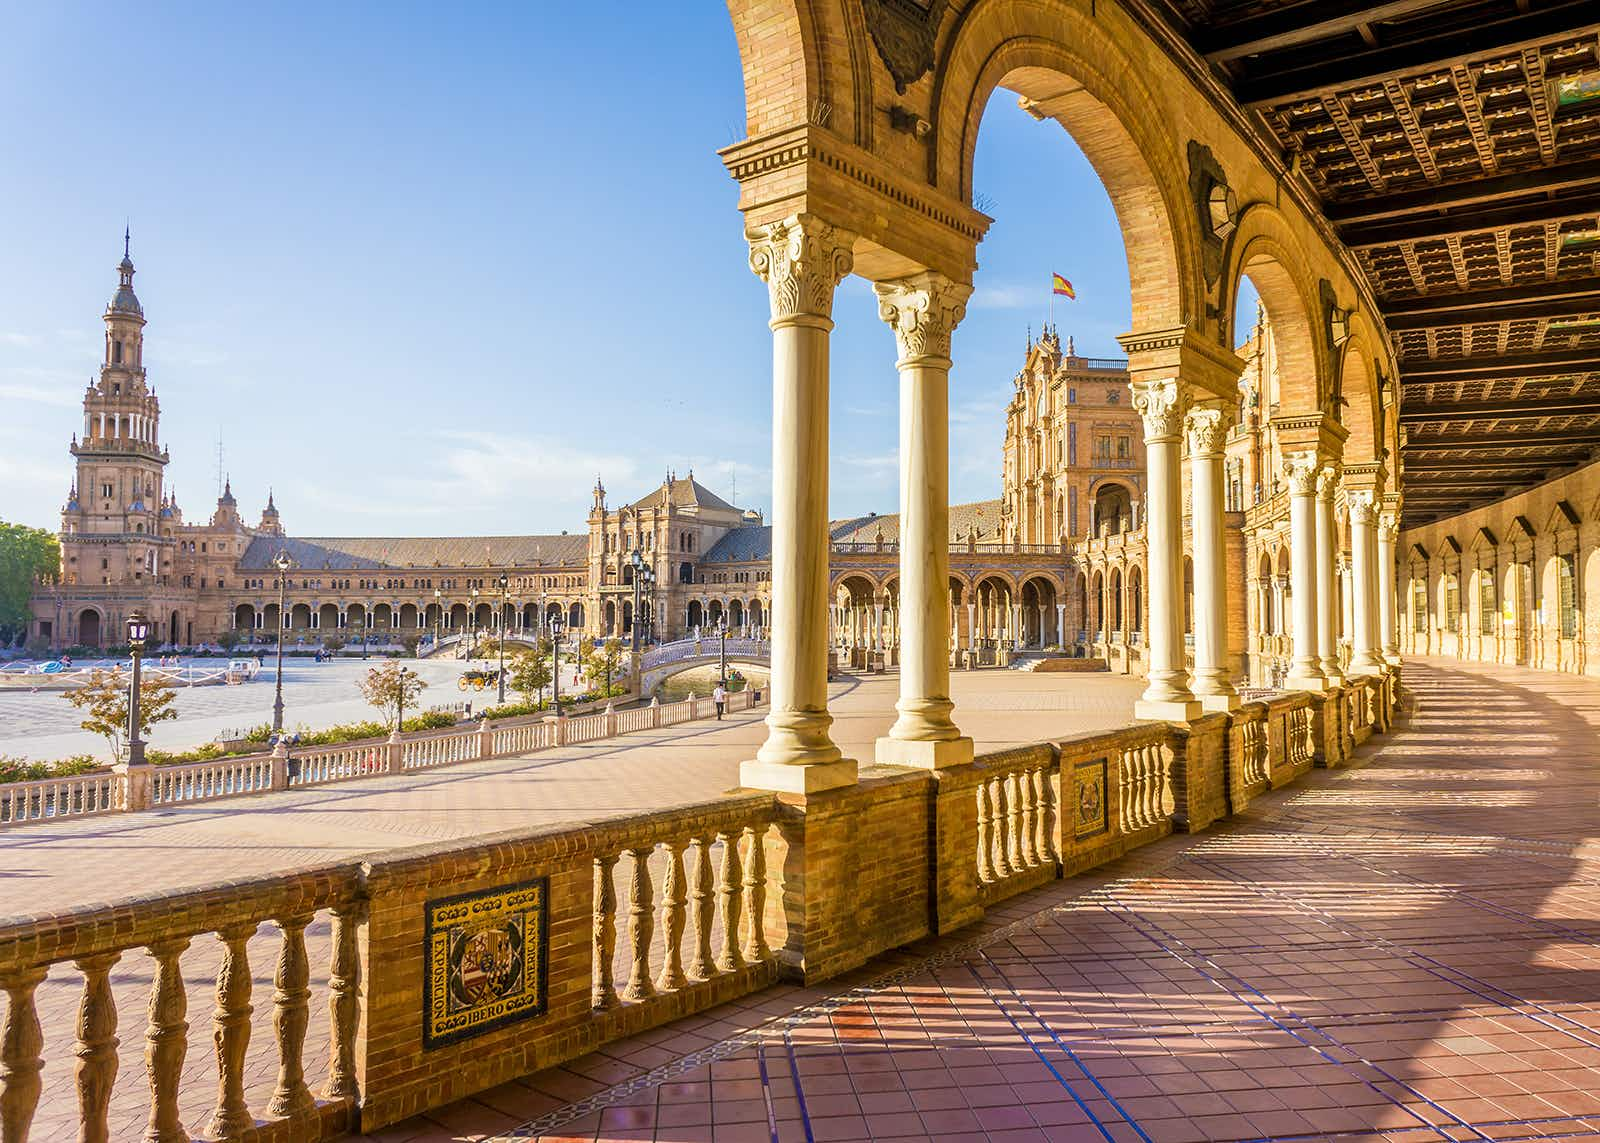 Spain Square (Plaza de Espana), Seville, Spain, built on 1928, it is one example of the Regionalism Architecture mixing Renaissance and Moorish styles.; Shutterstock ID 363034142; Your name (First / Last): Ceri James; GL account no.: 56530/Global Publishing-WIP/CeriJames/BestinTravel2018; Netsuite department name: 56530/Global Publishing-WIP/CeriJames/BestinTravel2018; Full Product or Project name including edition: 56530/Global Publishing-WIP/CeriJames/BestinTravel2018